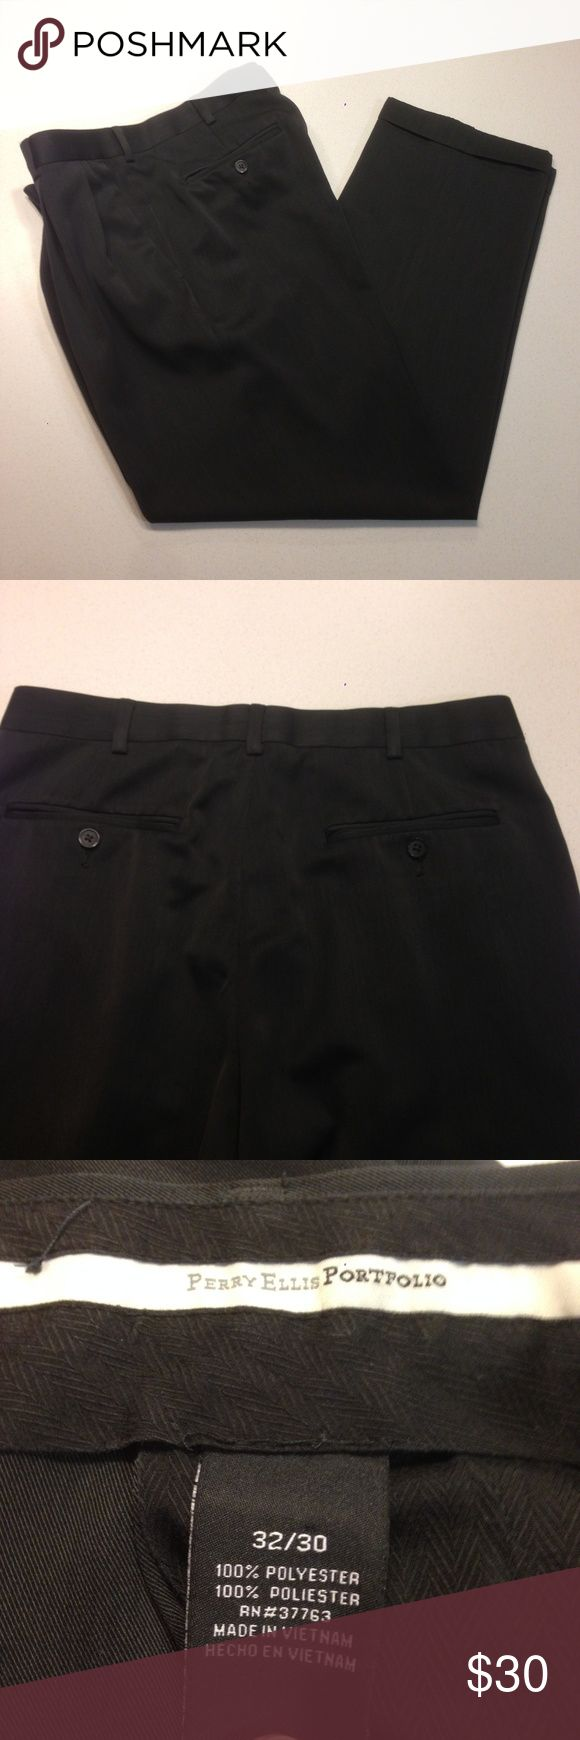 "Men's Dress Slacks EUC 32""x30"" Perry Ellis Portfolio dress slacks in excellent used condition. Double pleat classic fit melange portfolio pant. 100% polyester, Travel Luxe makes these slacks moisture wicking. Double pleated front, cuffed, double-besom back pockets with button closure. Machine washable. Dark gray/black color. 32"" x 30"". Perry Ellis Pants Dress"